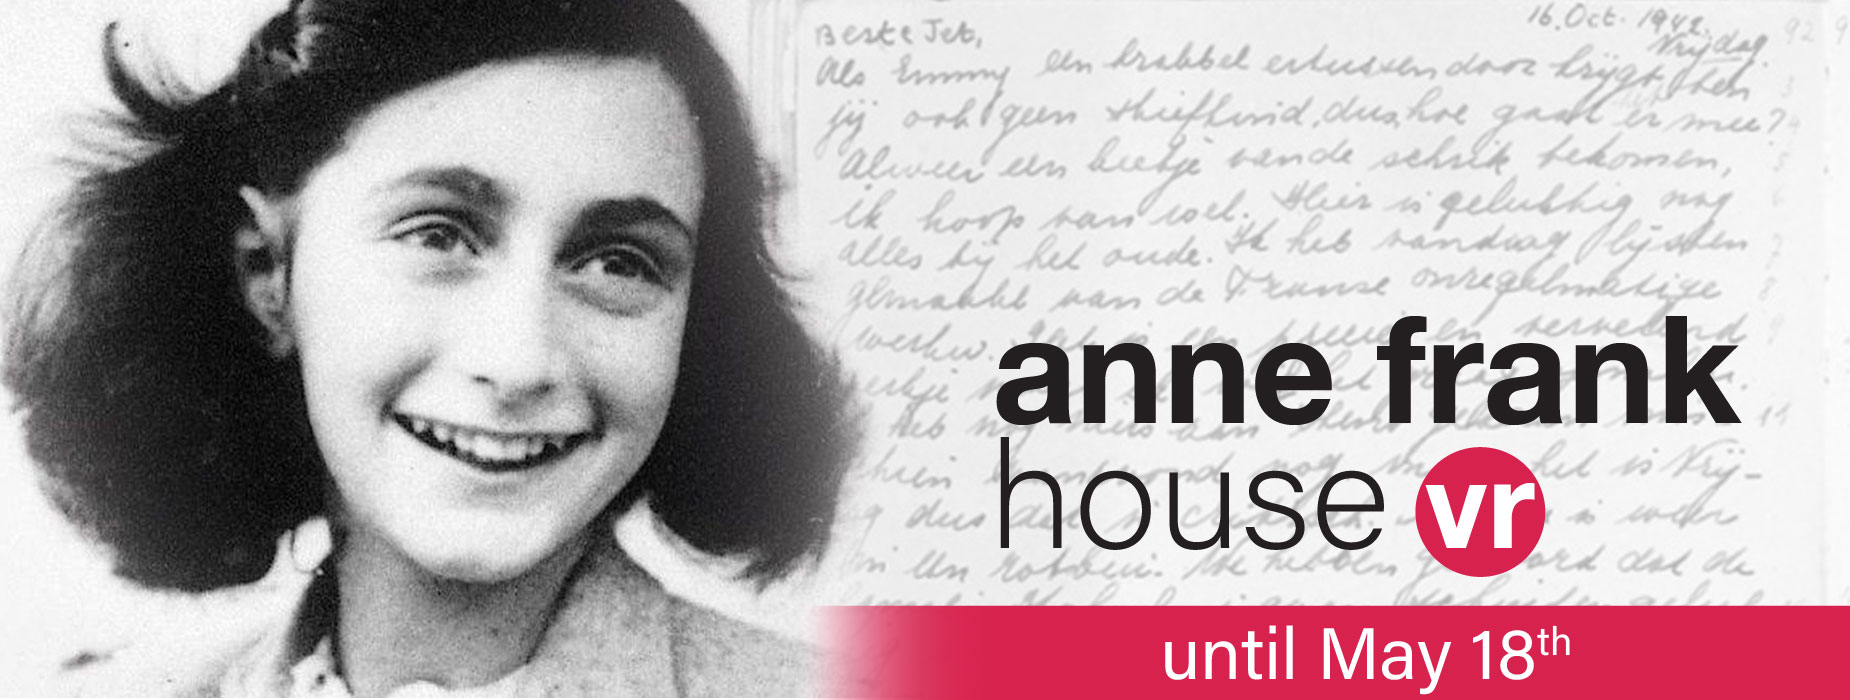 Banner Image for the Anne Frank House Virtual Reality event